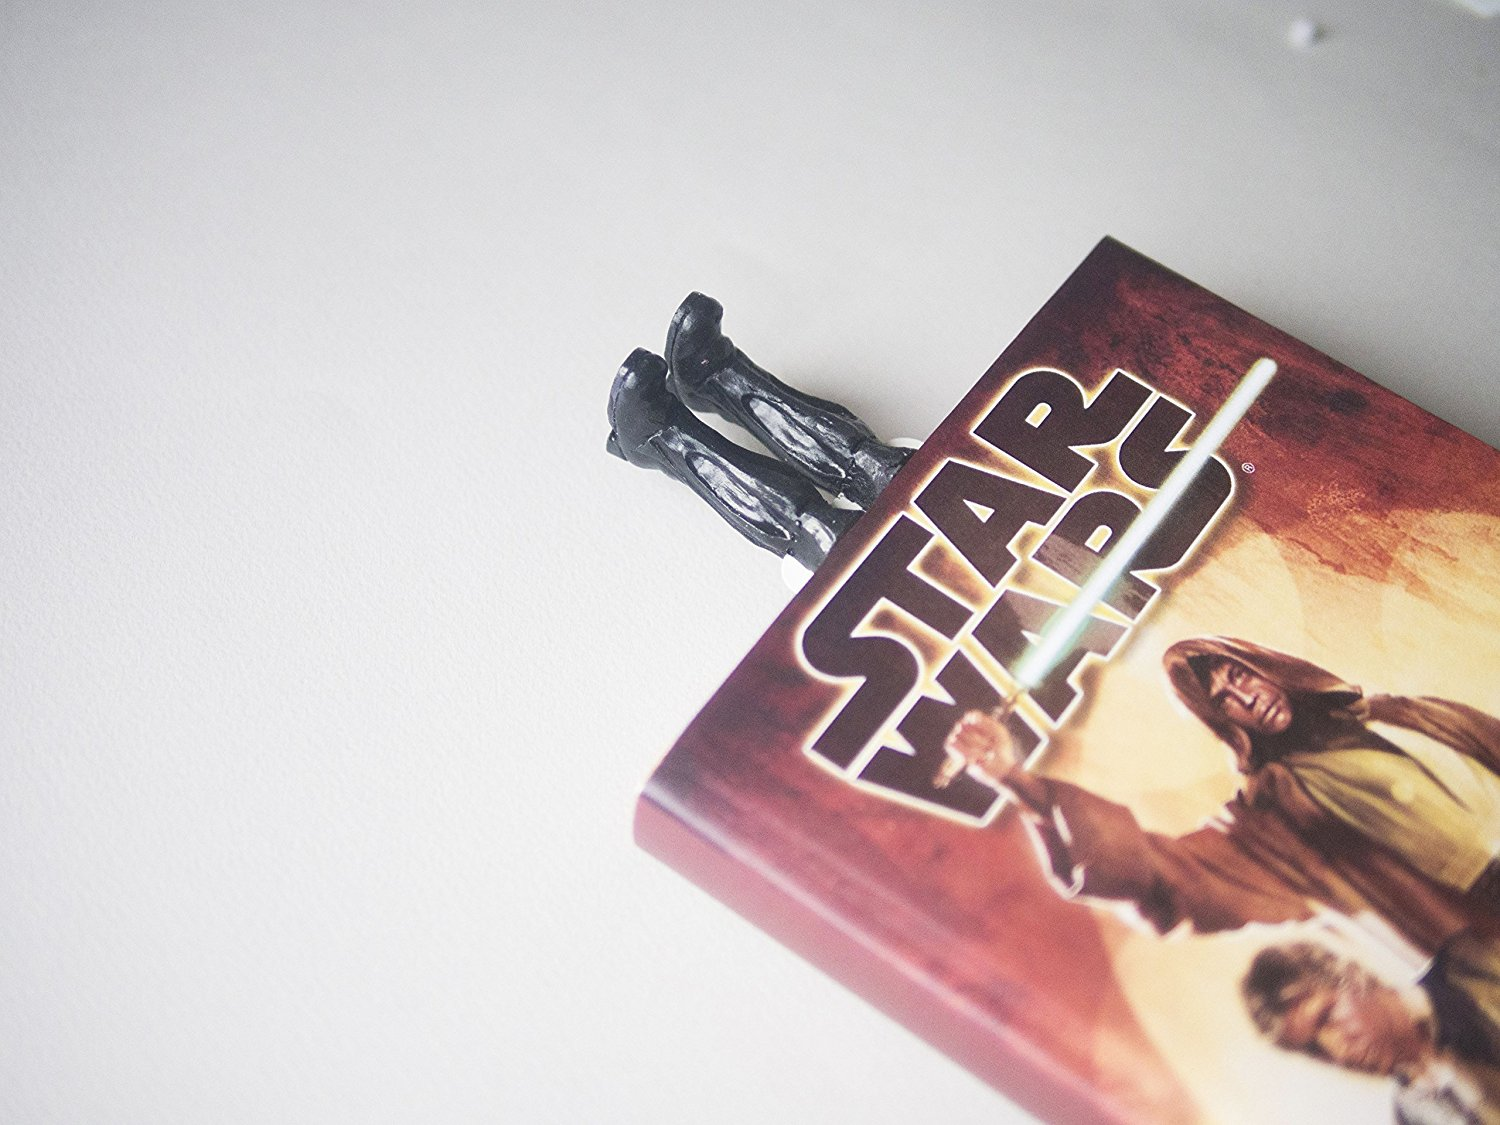 Darth Vader bookmark.